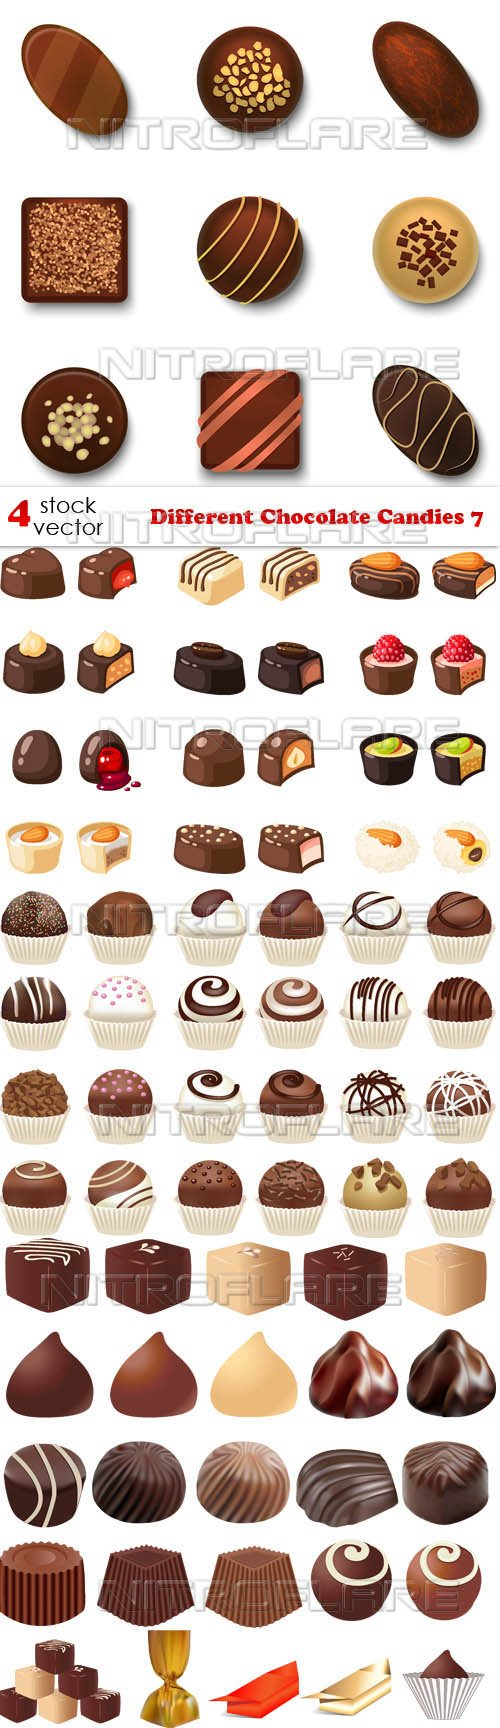 Vectors - Different Chocolate Candies 7